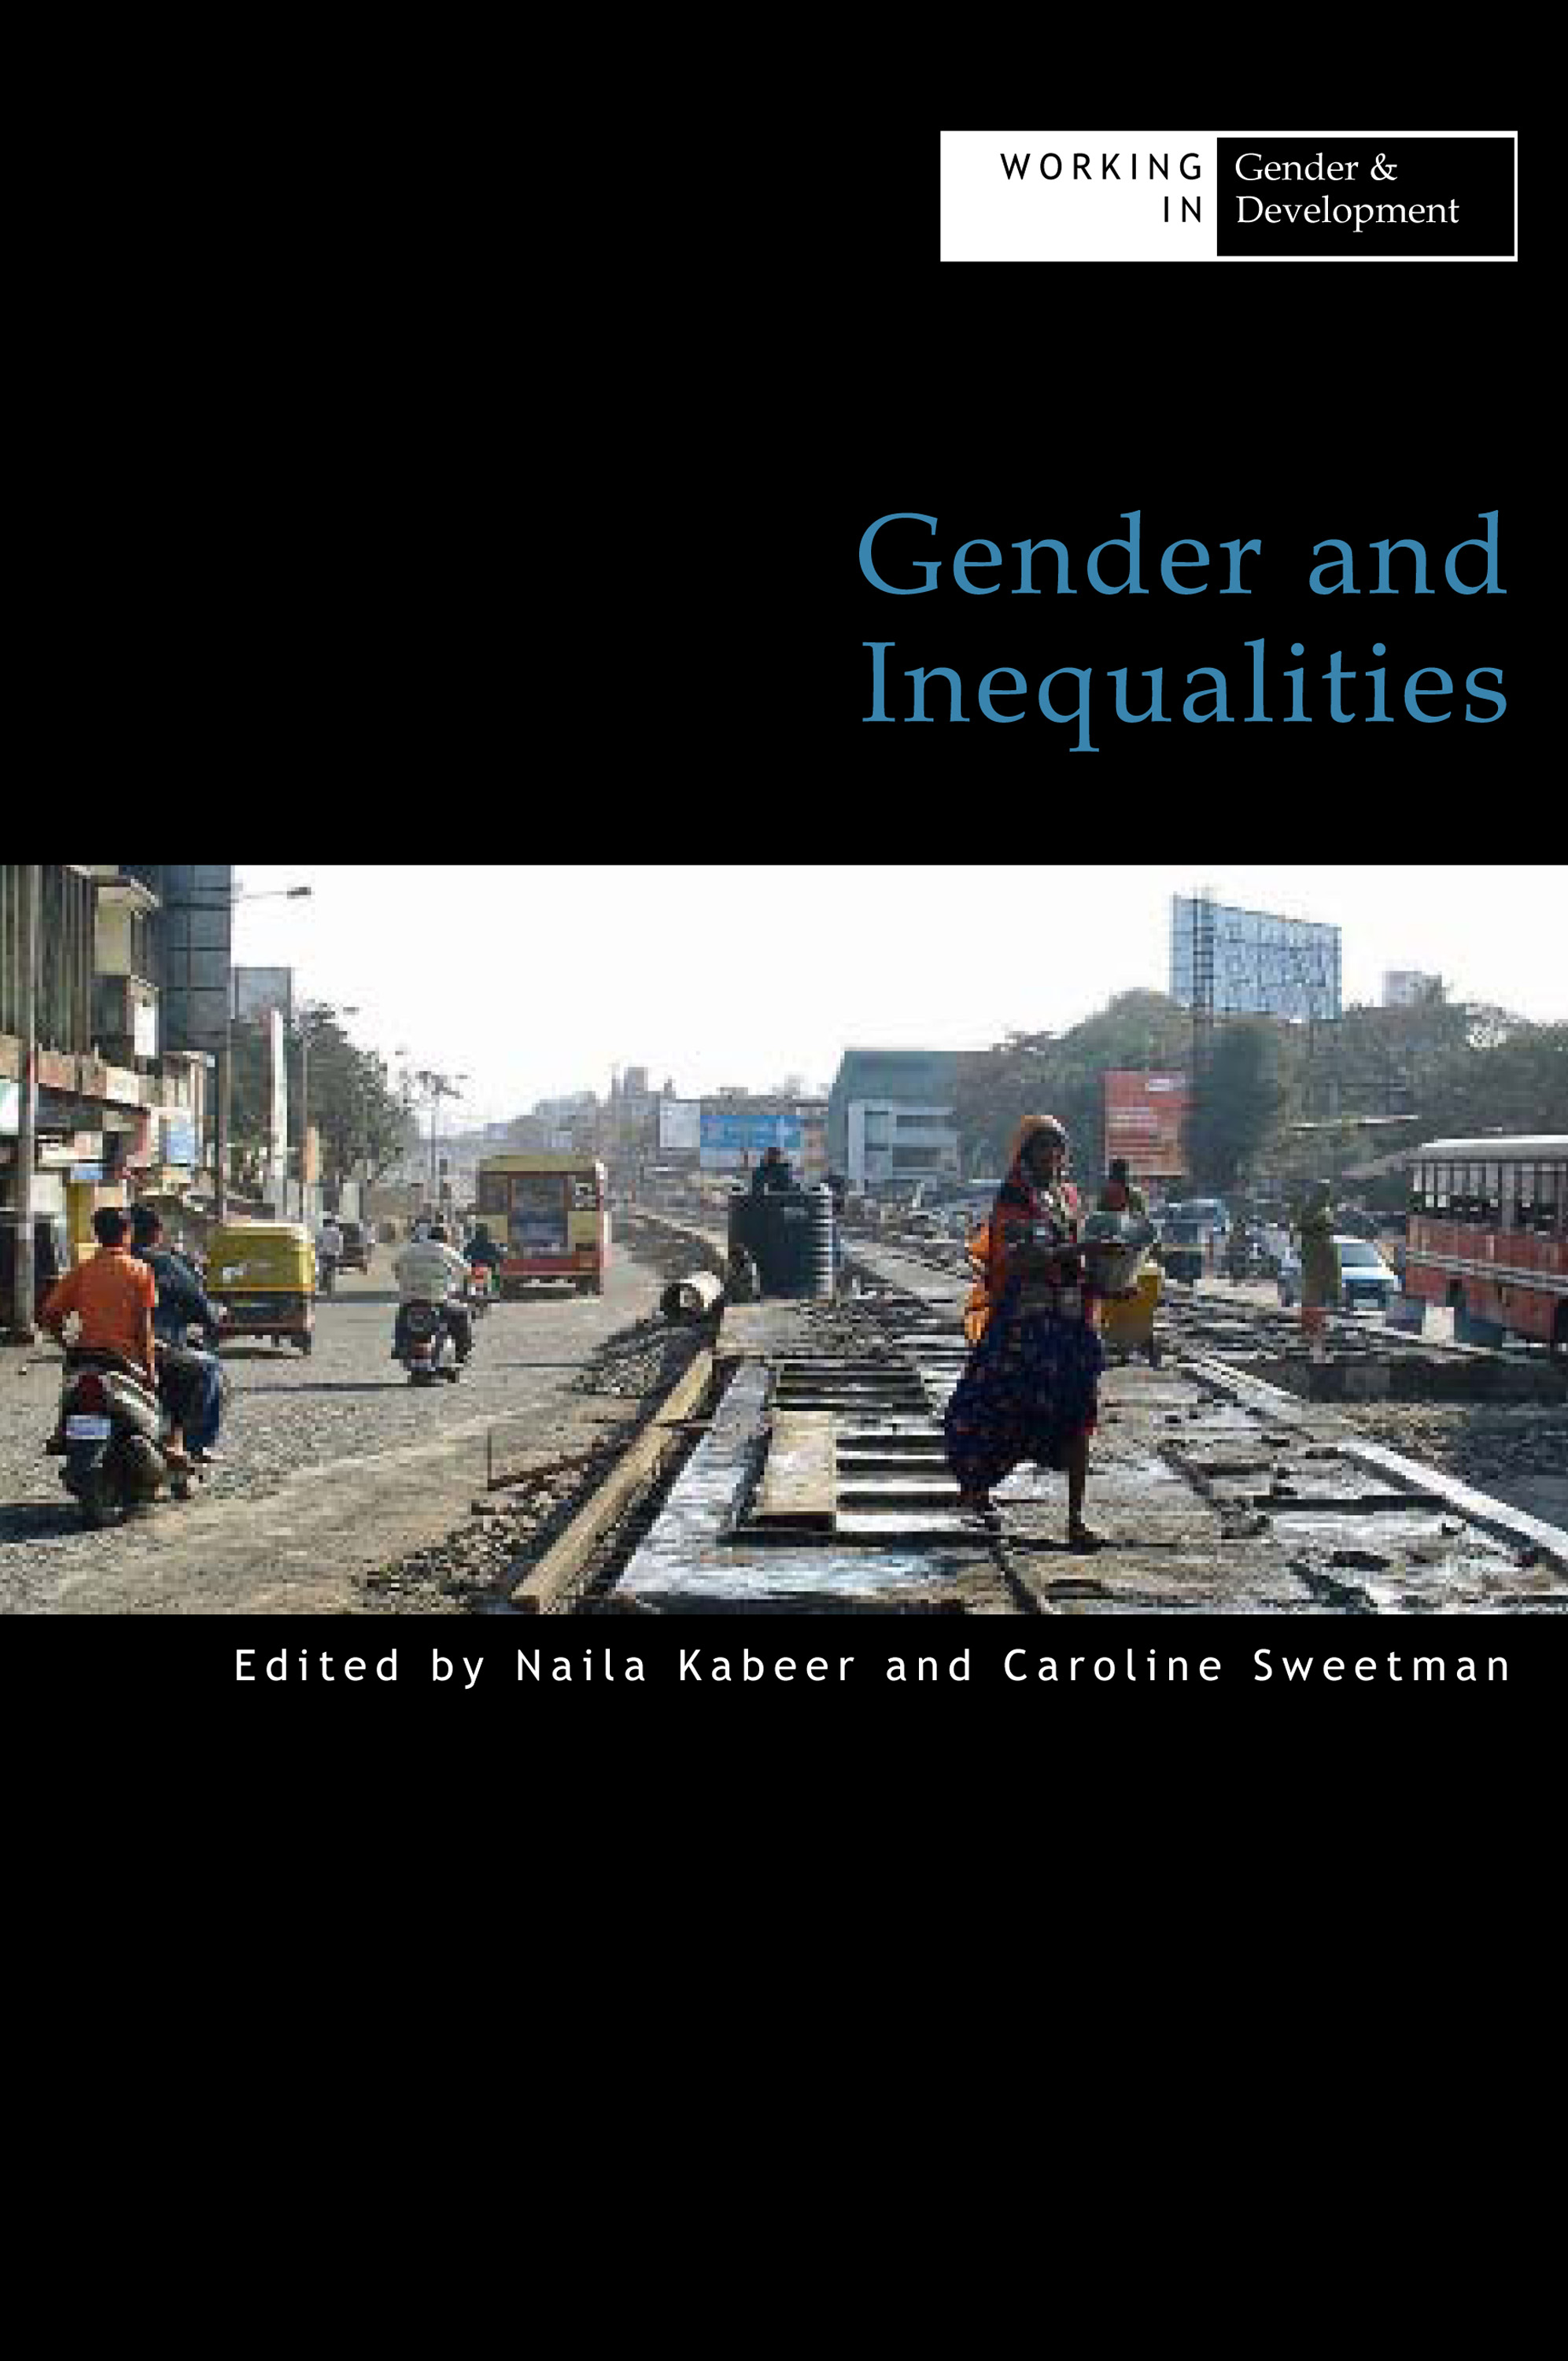 Gender and Inequalities